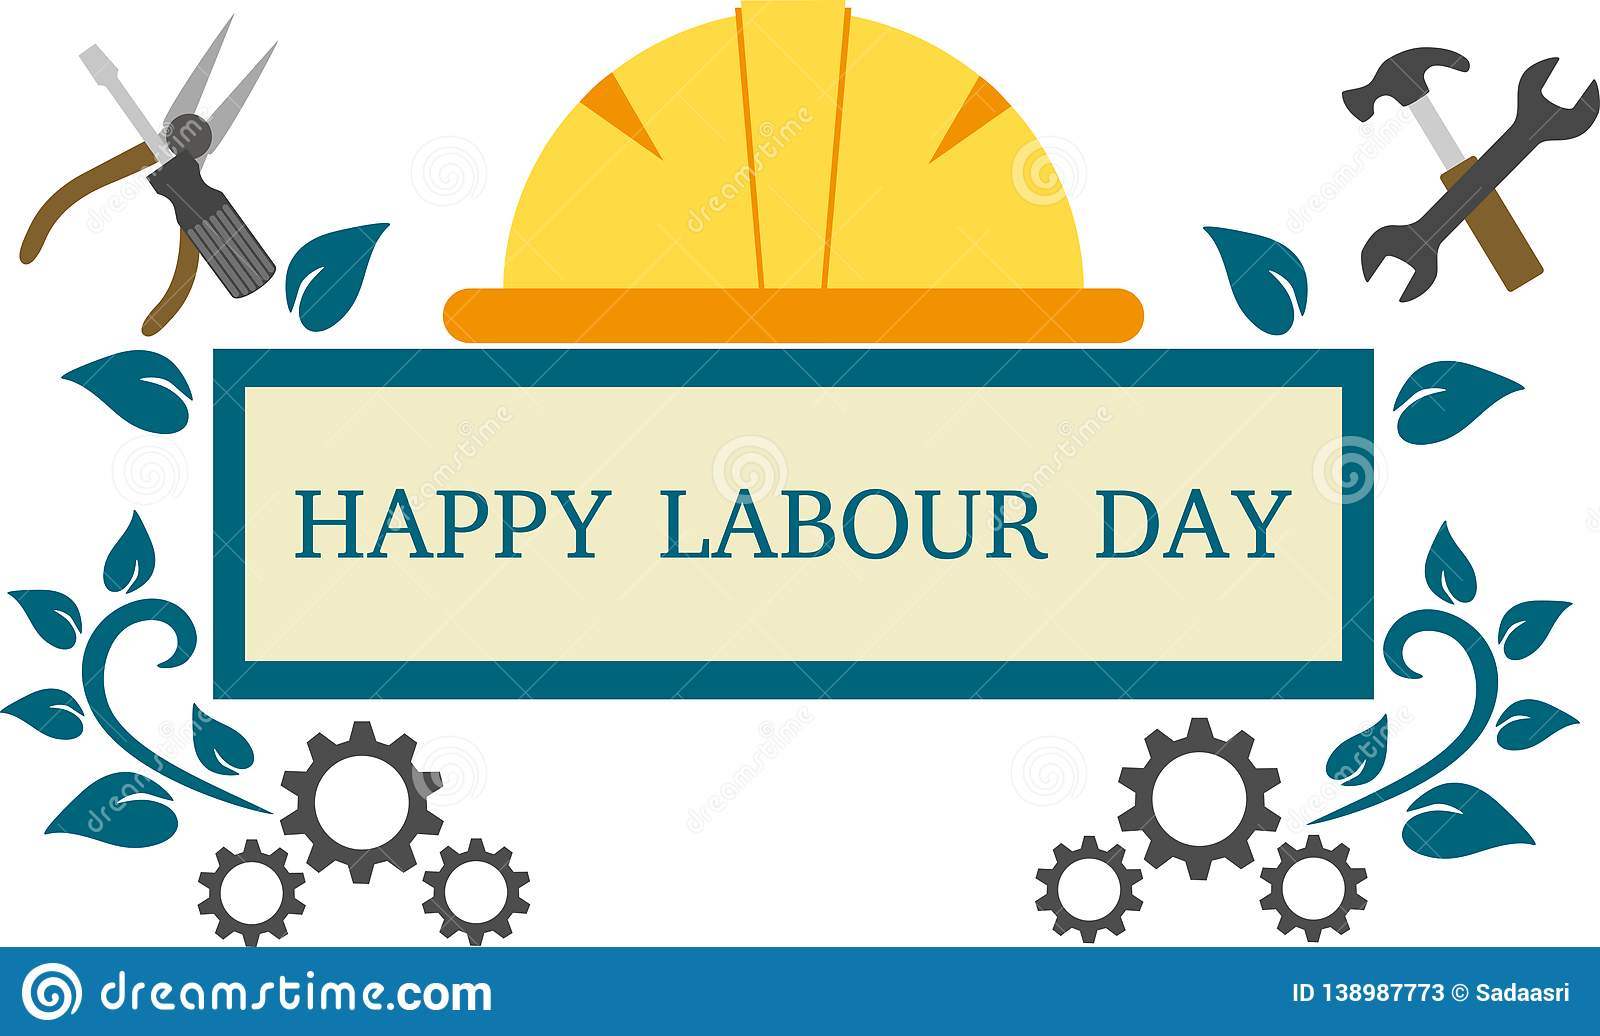 Happy Labour Day, Employers, marketing.